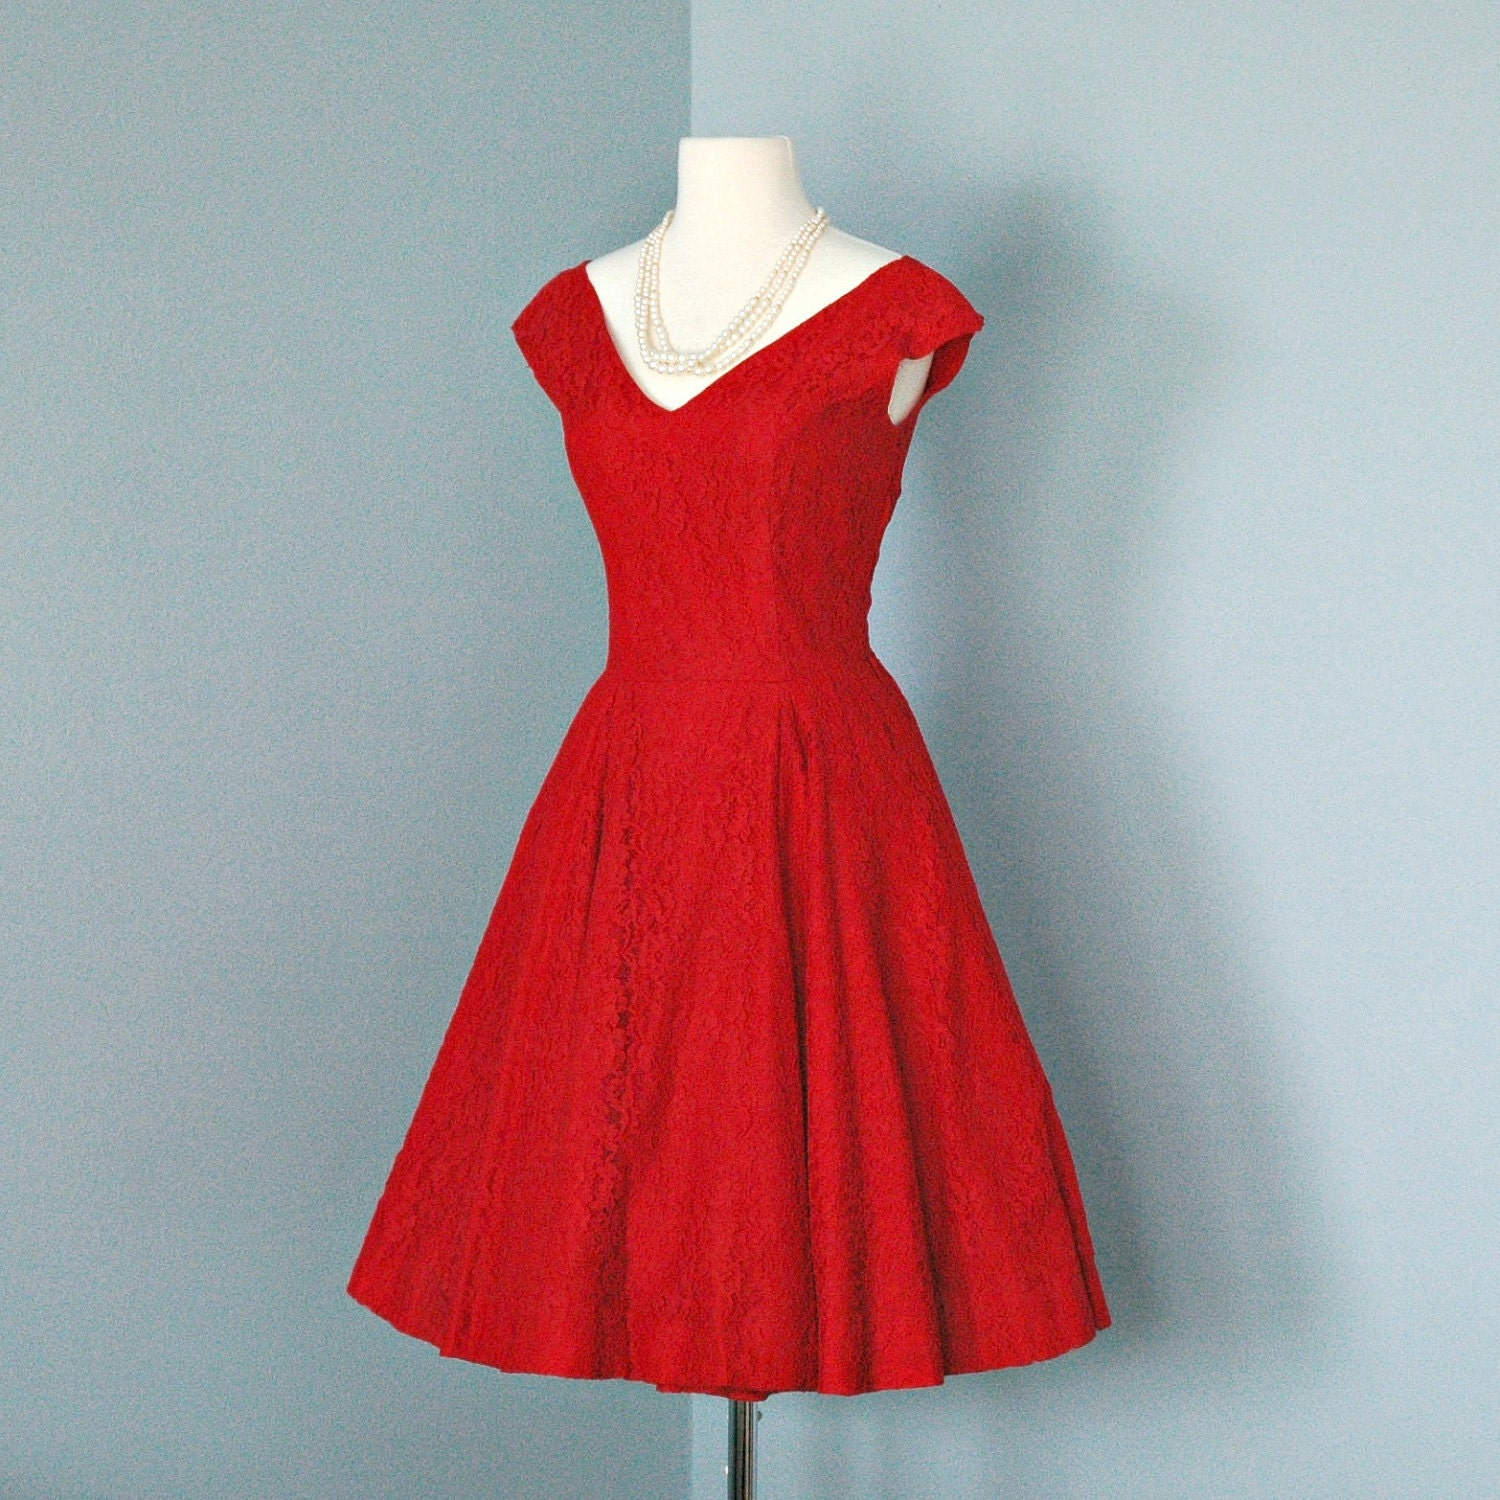 Vintage Valentine Red Lace Cocktail Dress...Beautful 1950s